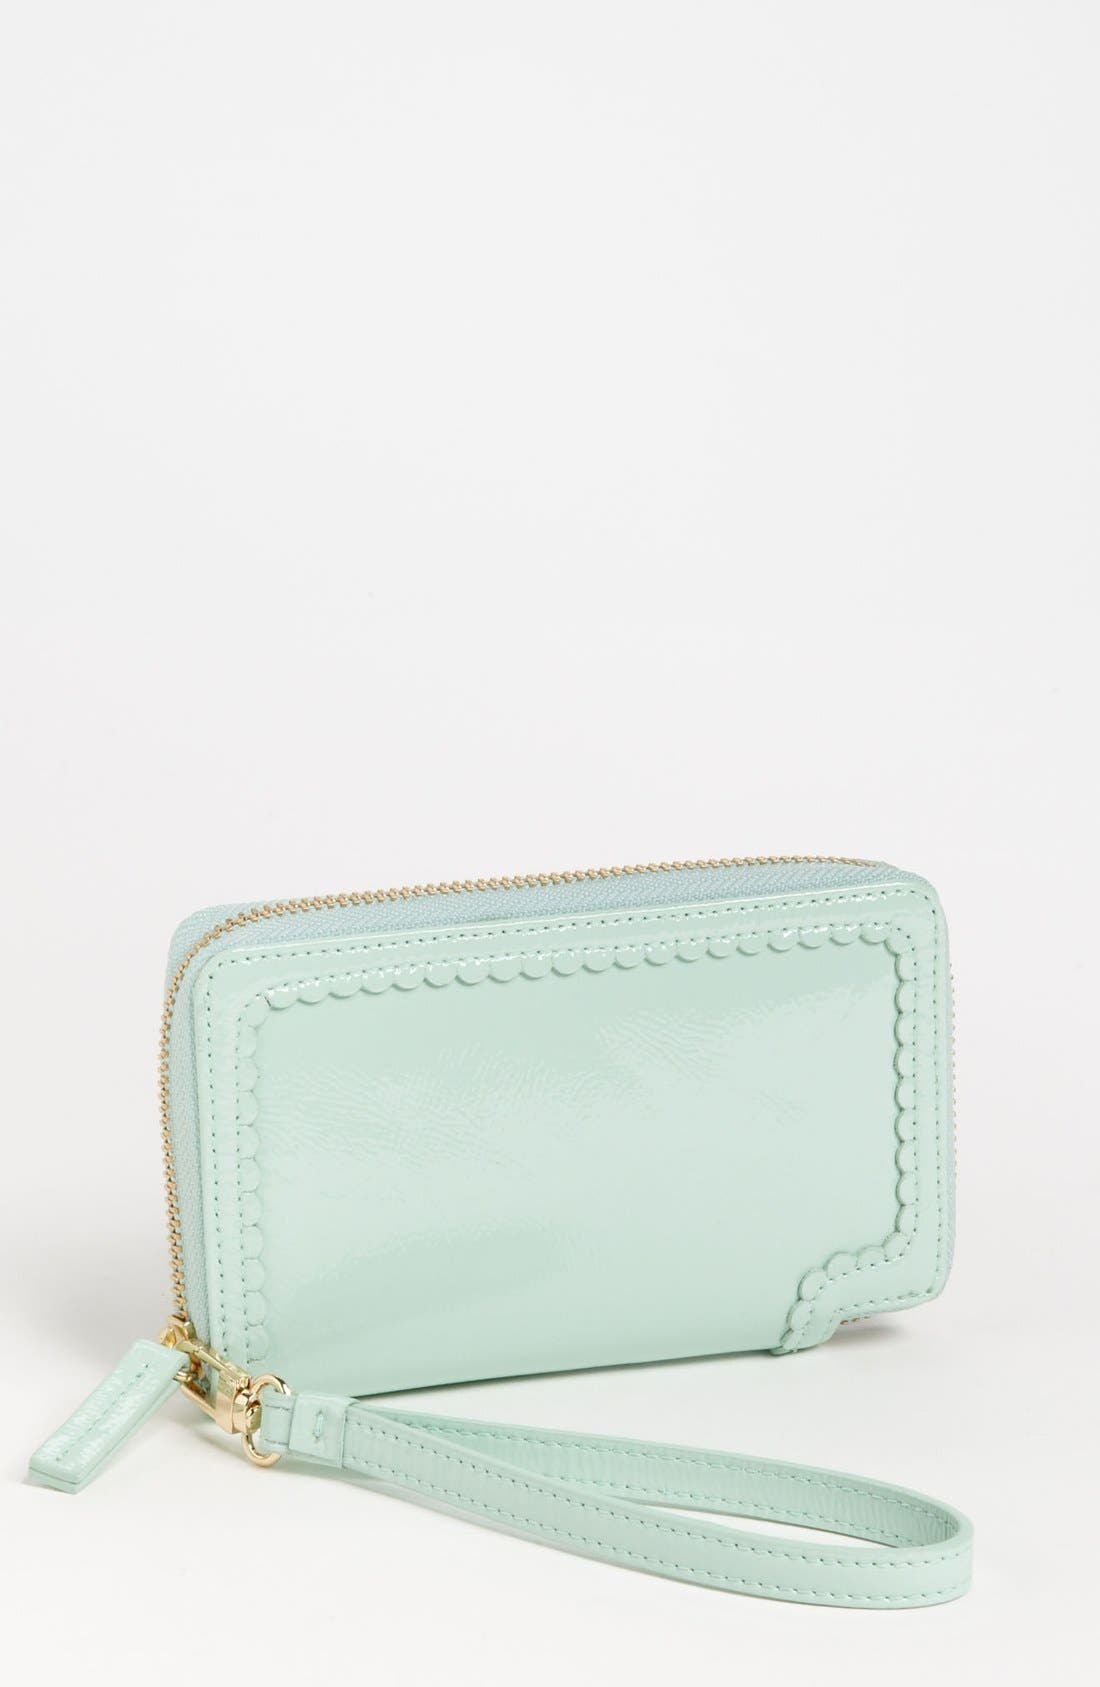 Alternate Image 1 Selected - Halogen 'Cassie' Wristlet